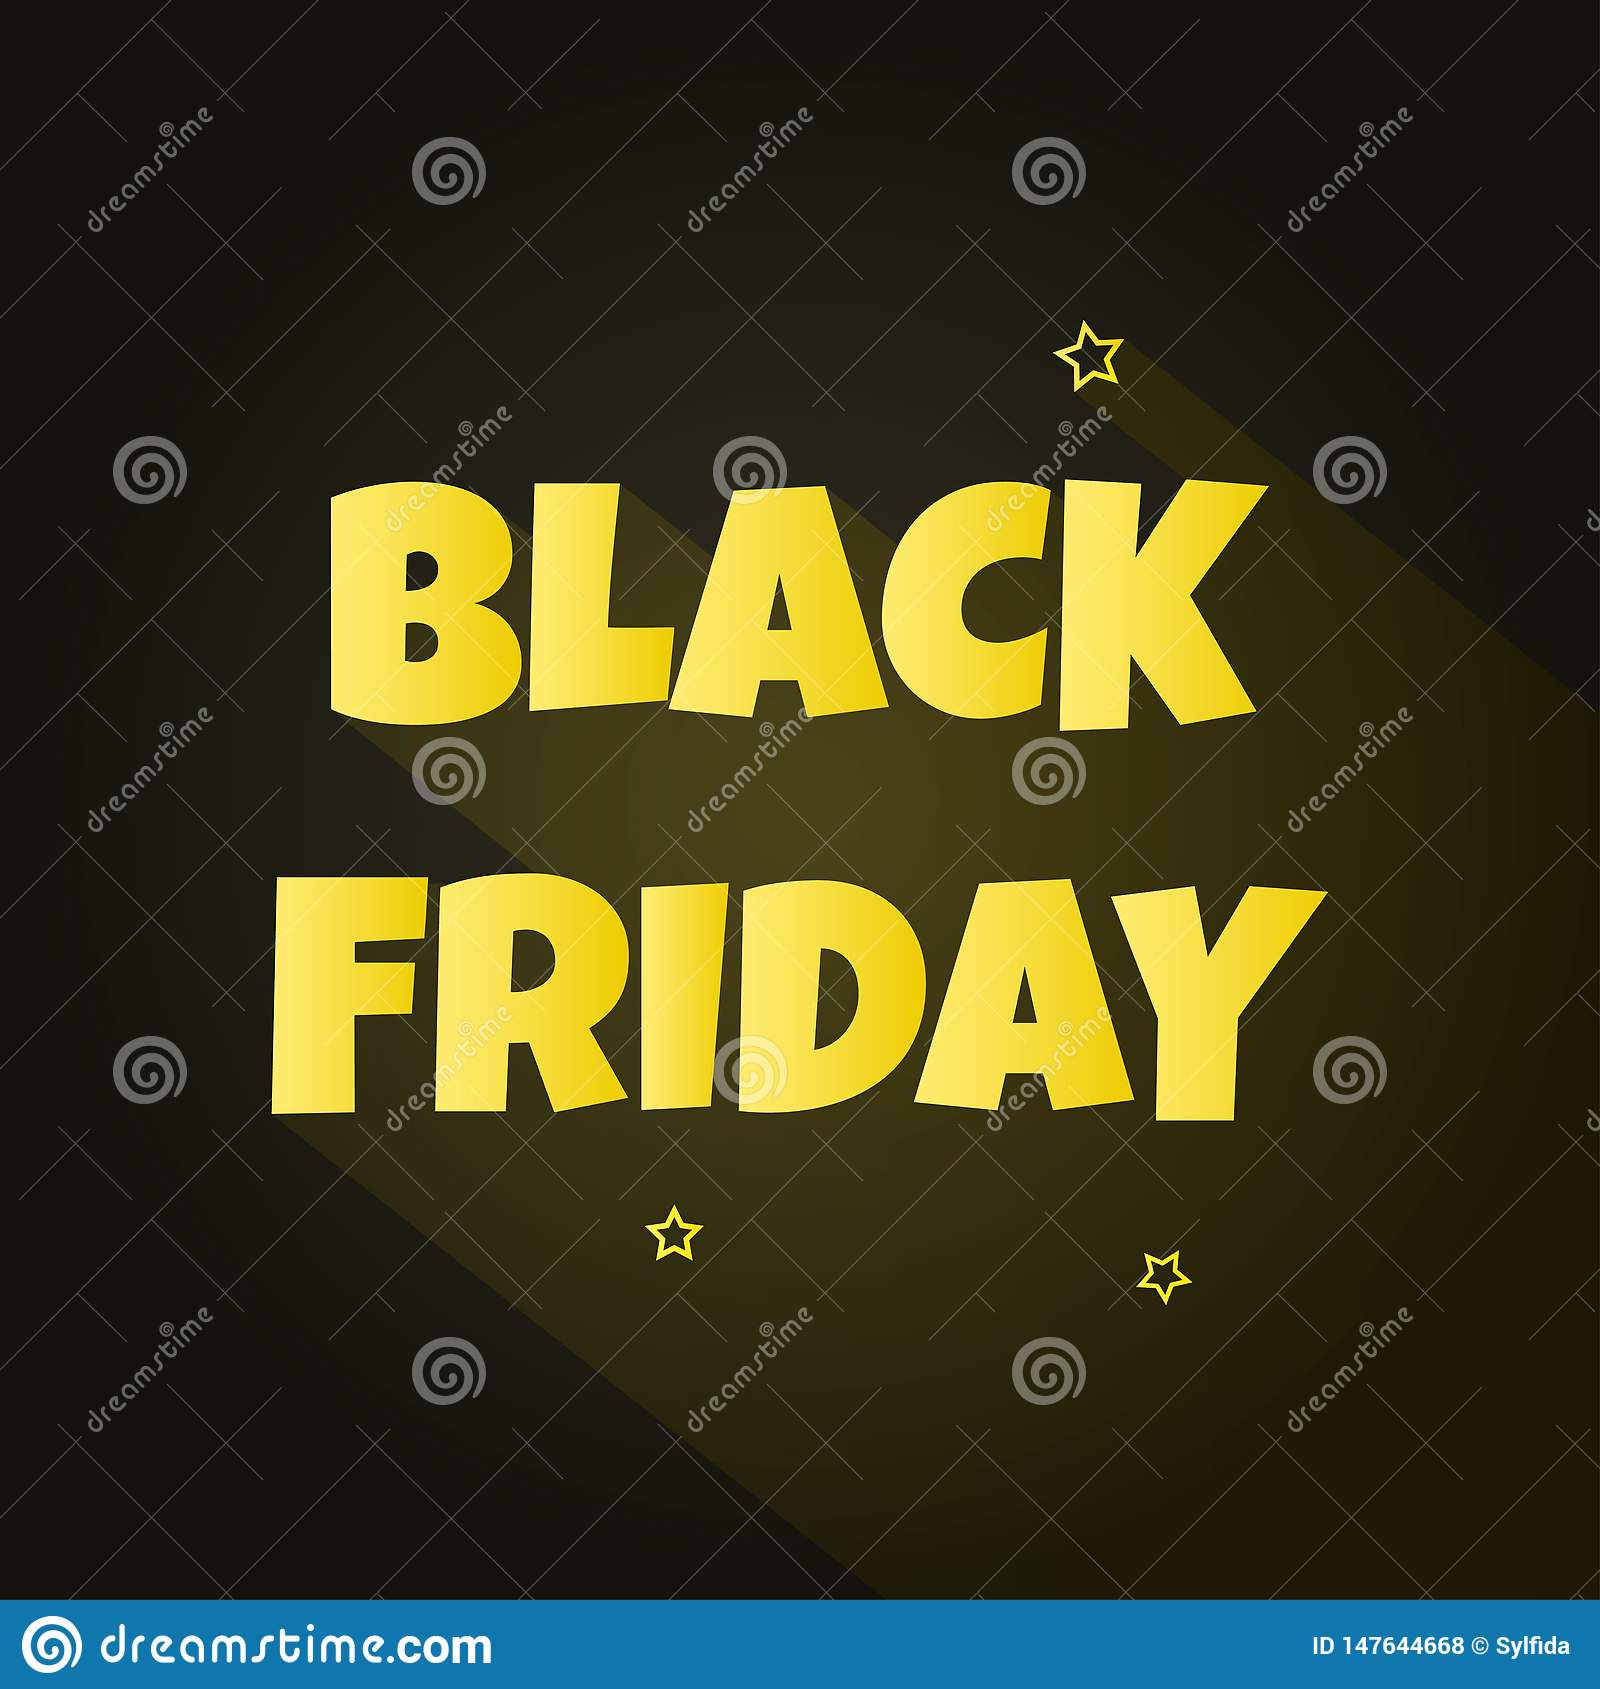 Golden inscription BLACK FRIDAY with shadow and stars on background. Vector